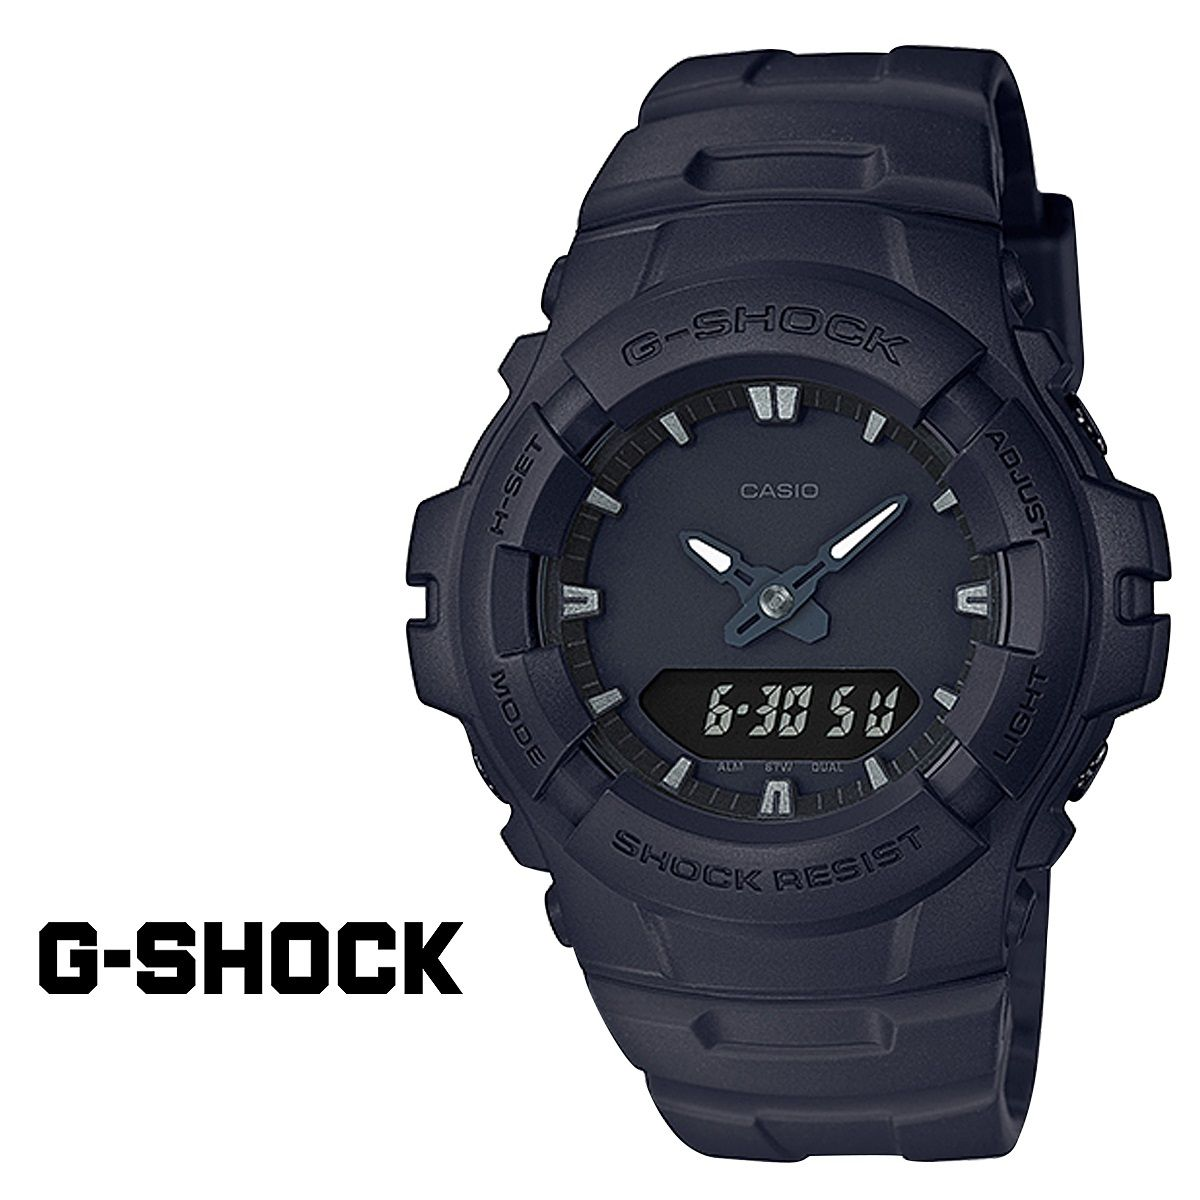 CASIO GSHOCK G100BB1AJF G shock watches, G shock